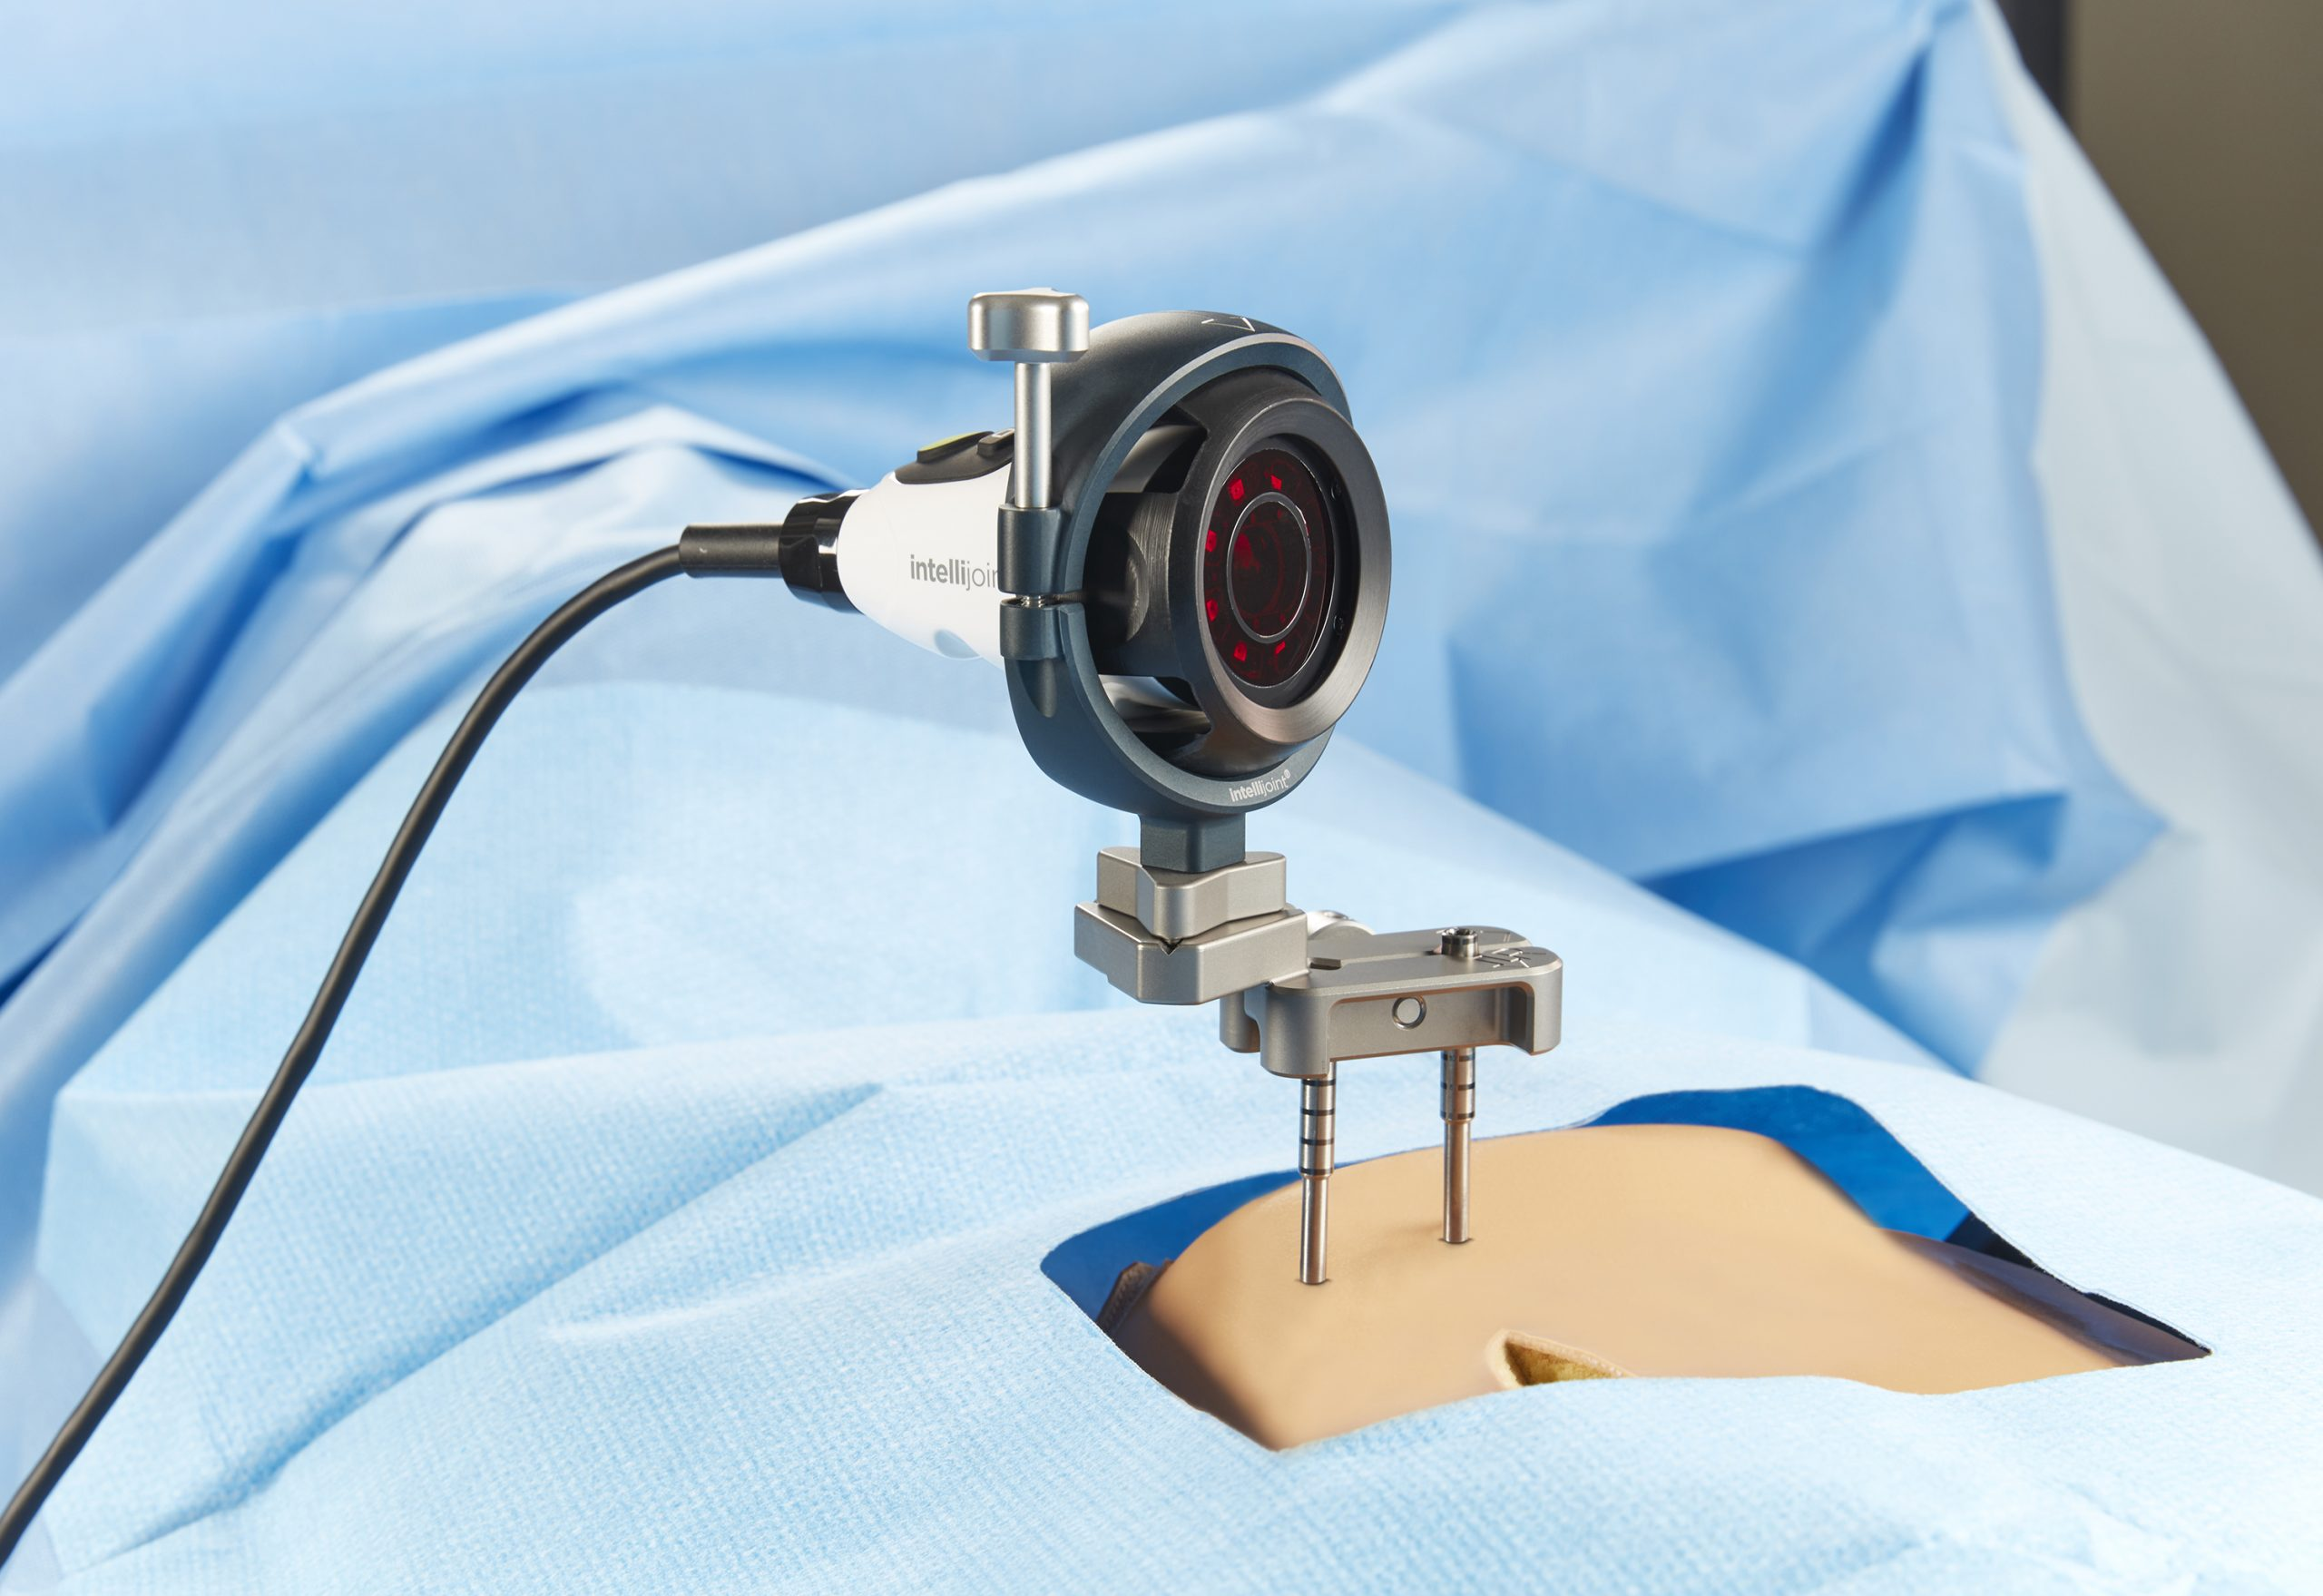 Photo of Intellijoint HIP being used in a hip replacement surgery.